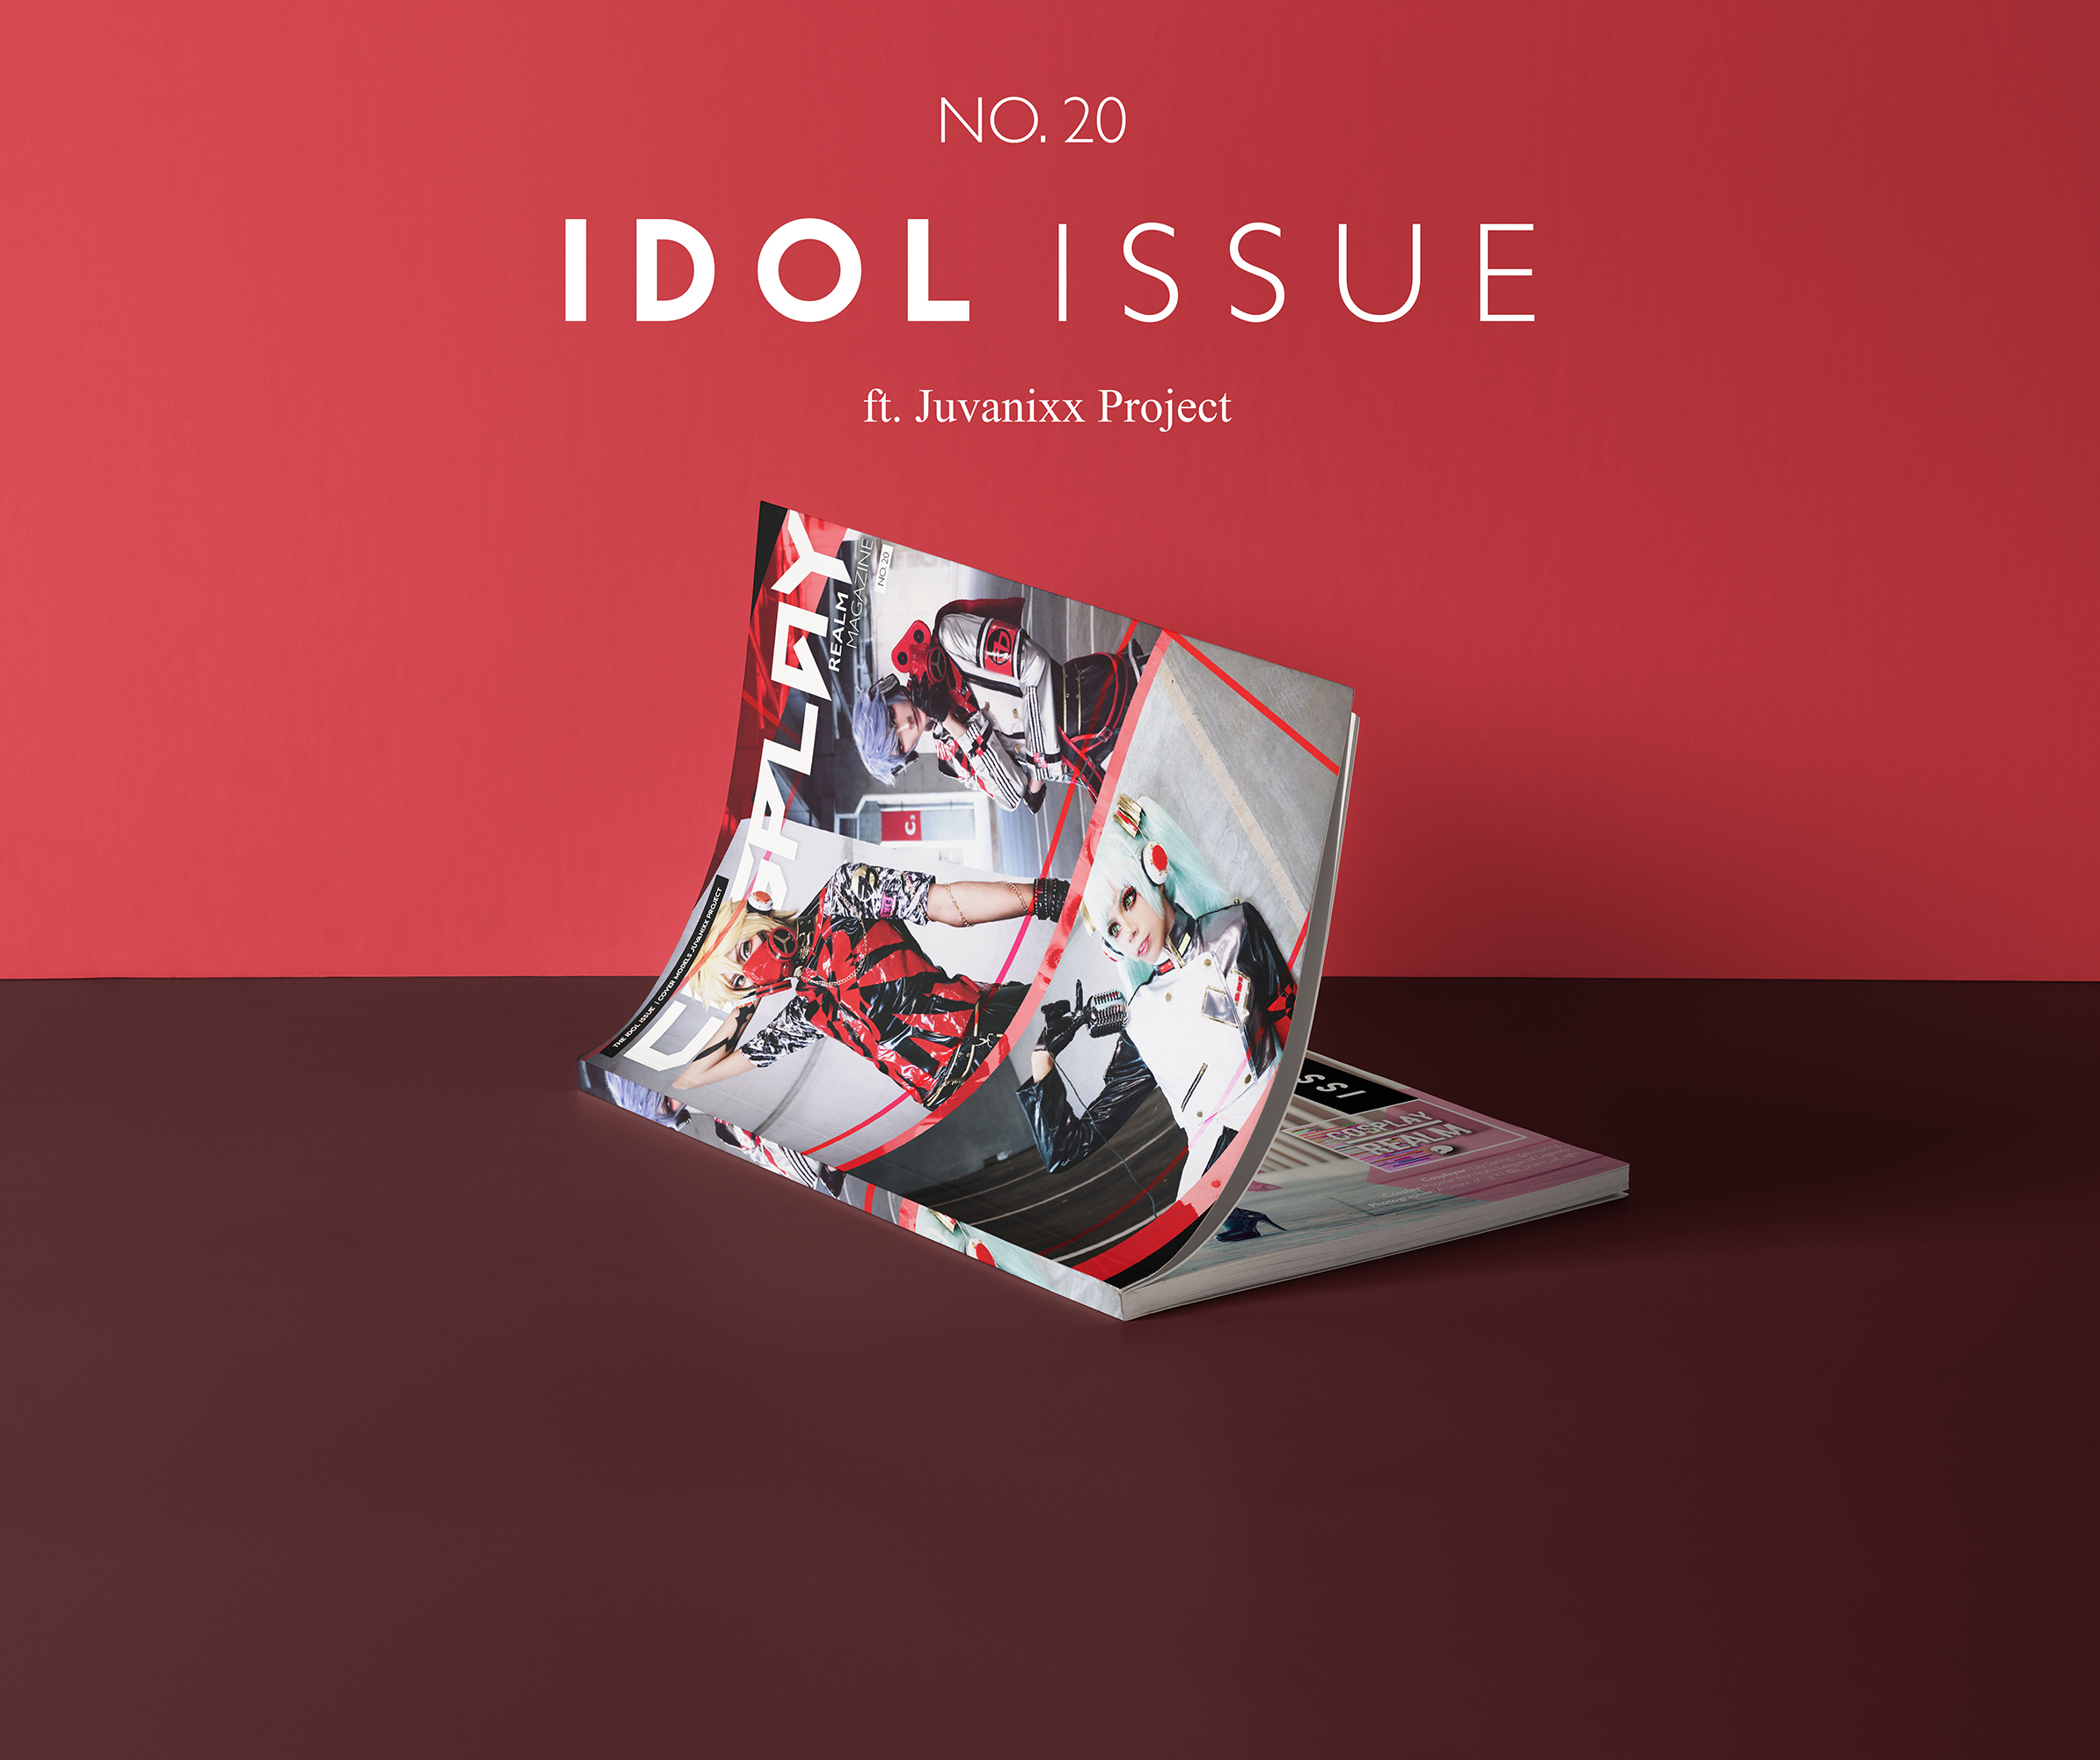 GRAB A COPY - of the Idol Issue: